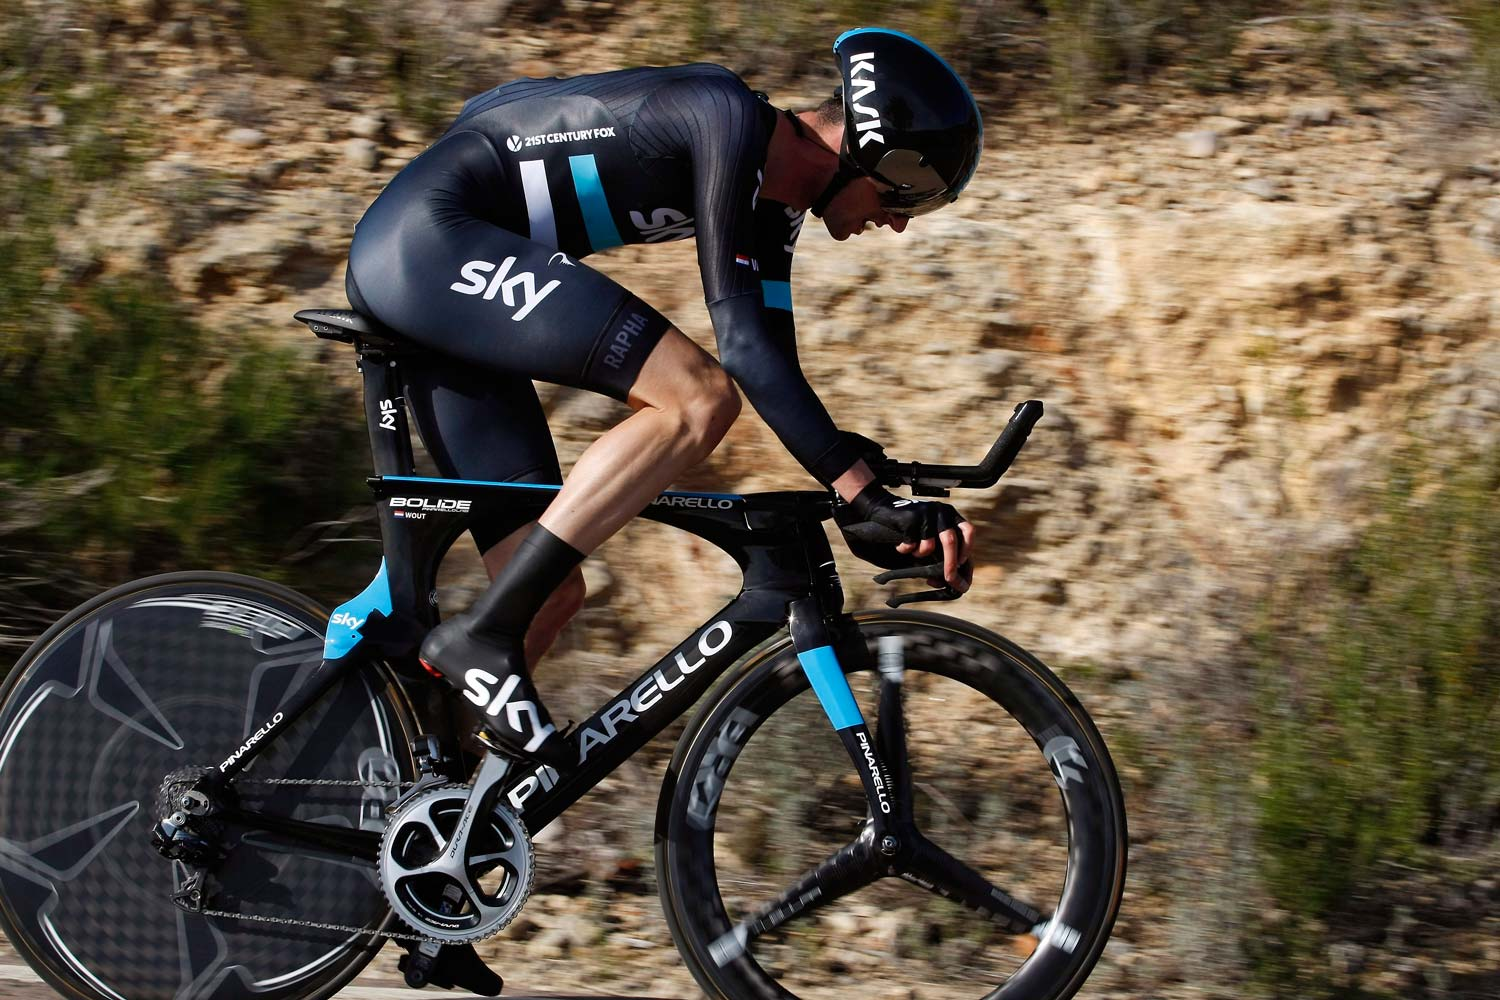 Wout Poels on his way to a TT win in Spain. Photo: Graham Watson